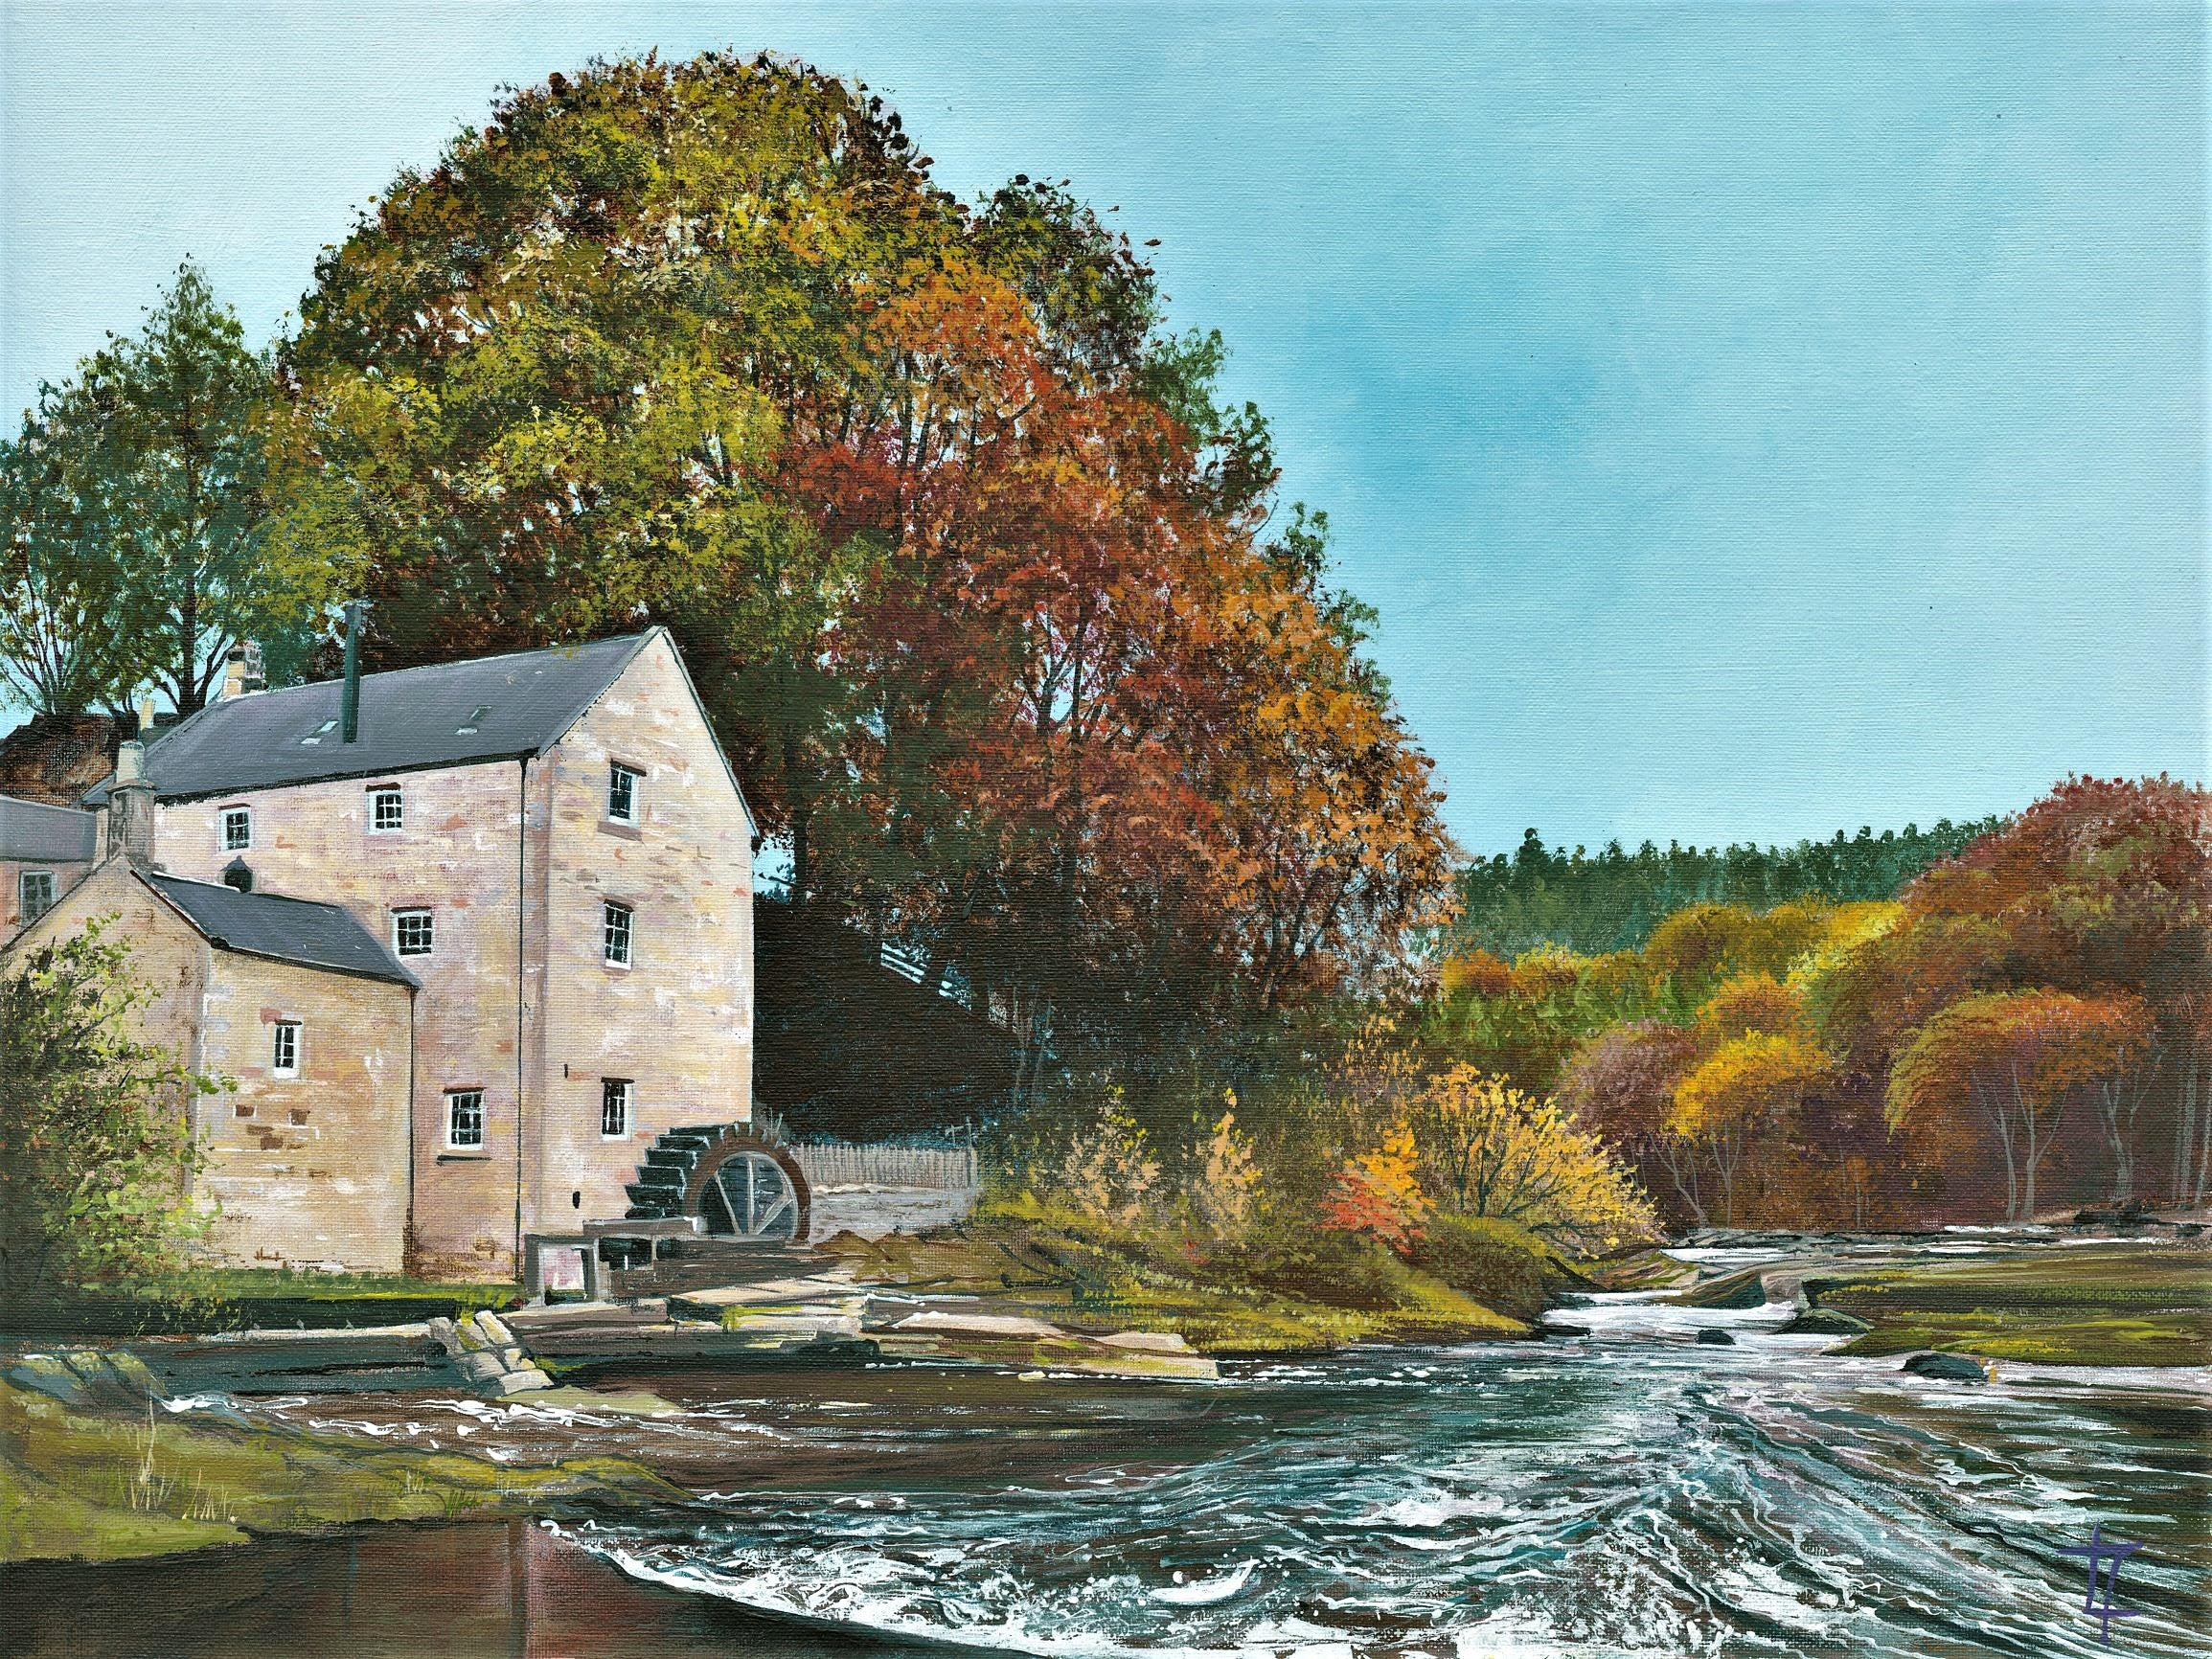 Thrum Mill – Rushing River